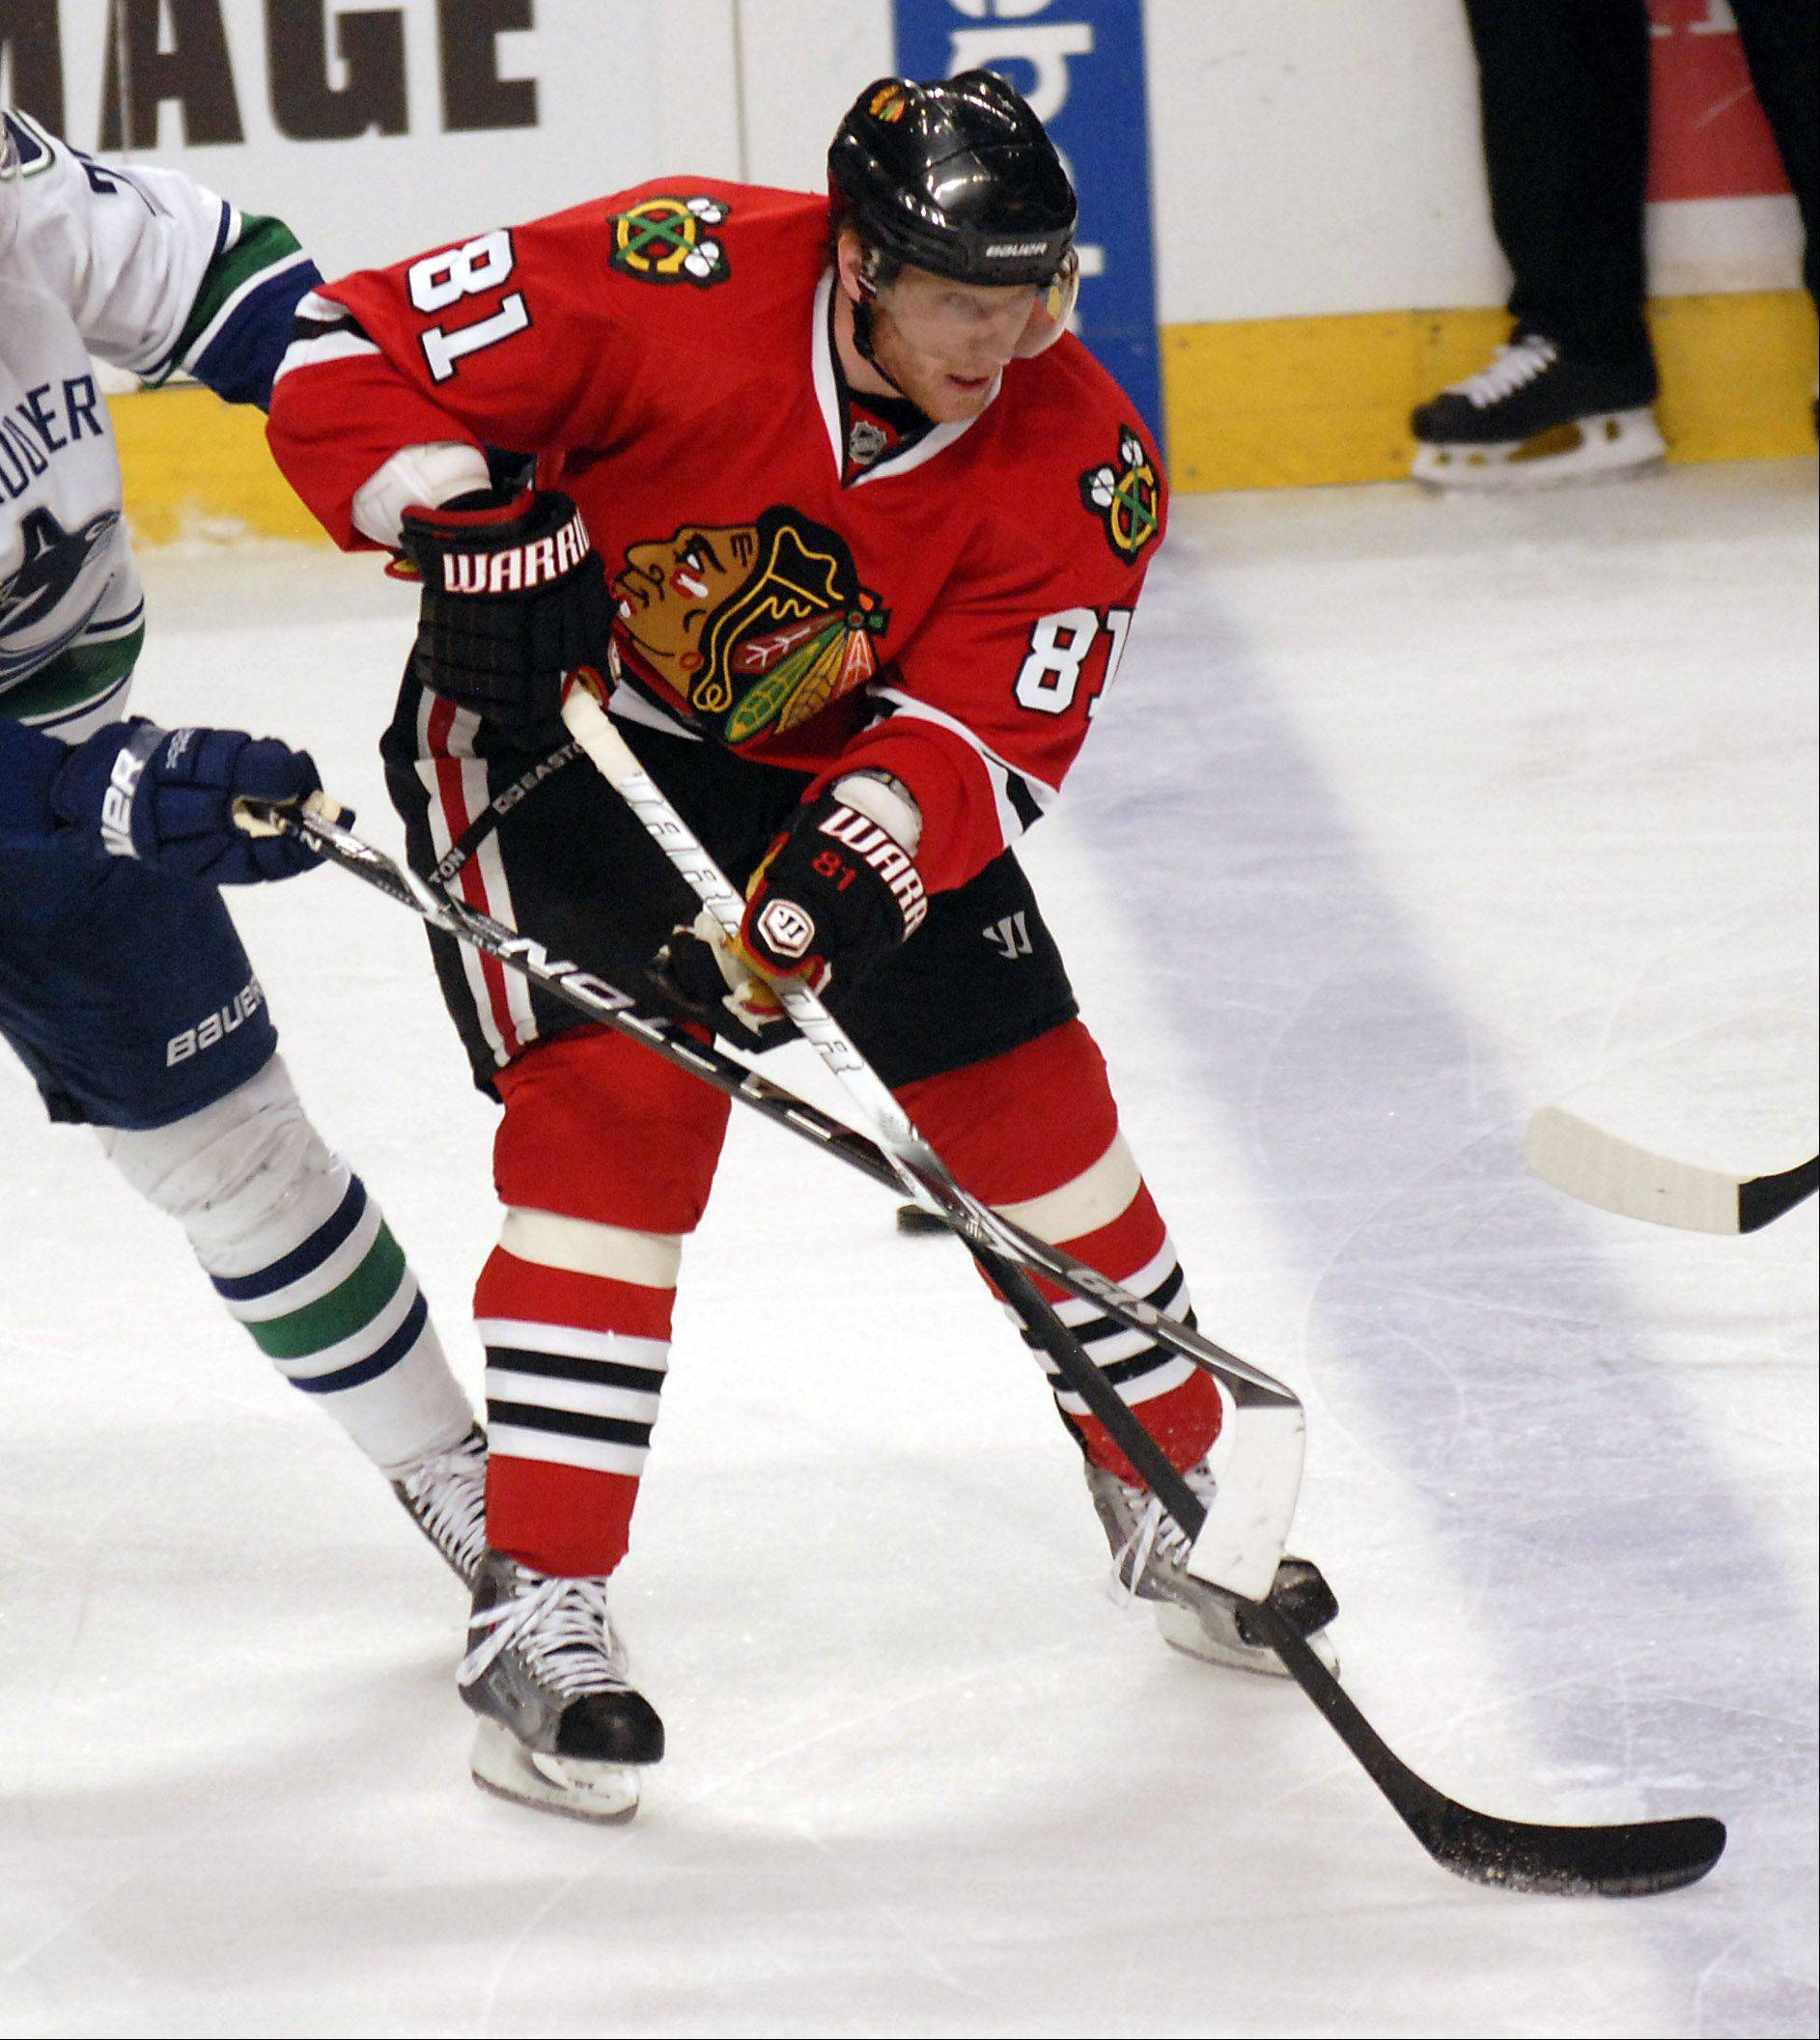 Marian Hossa rejoined the Blackhawks on Wednesday after mourning the loss of his best friend and welcoming a daughter.